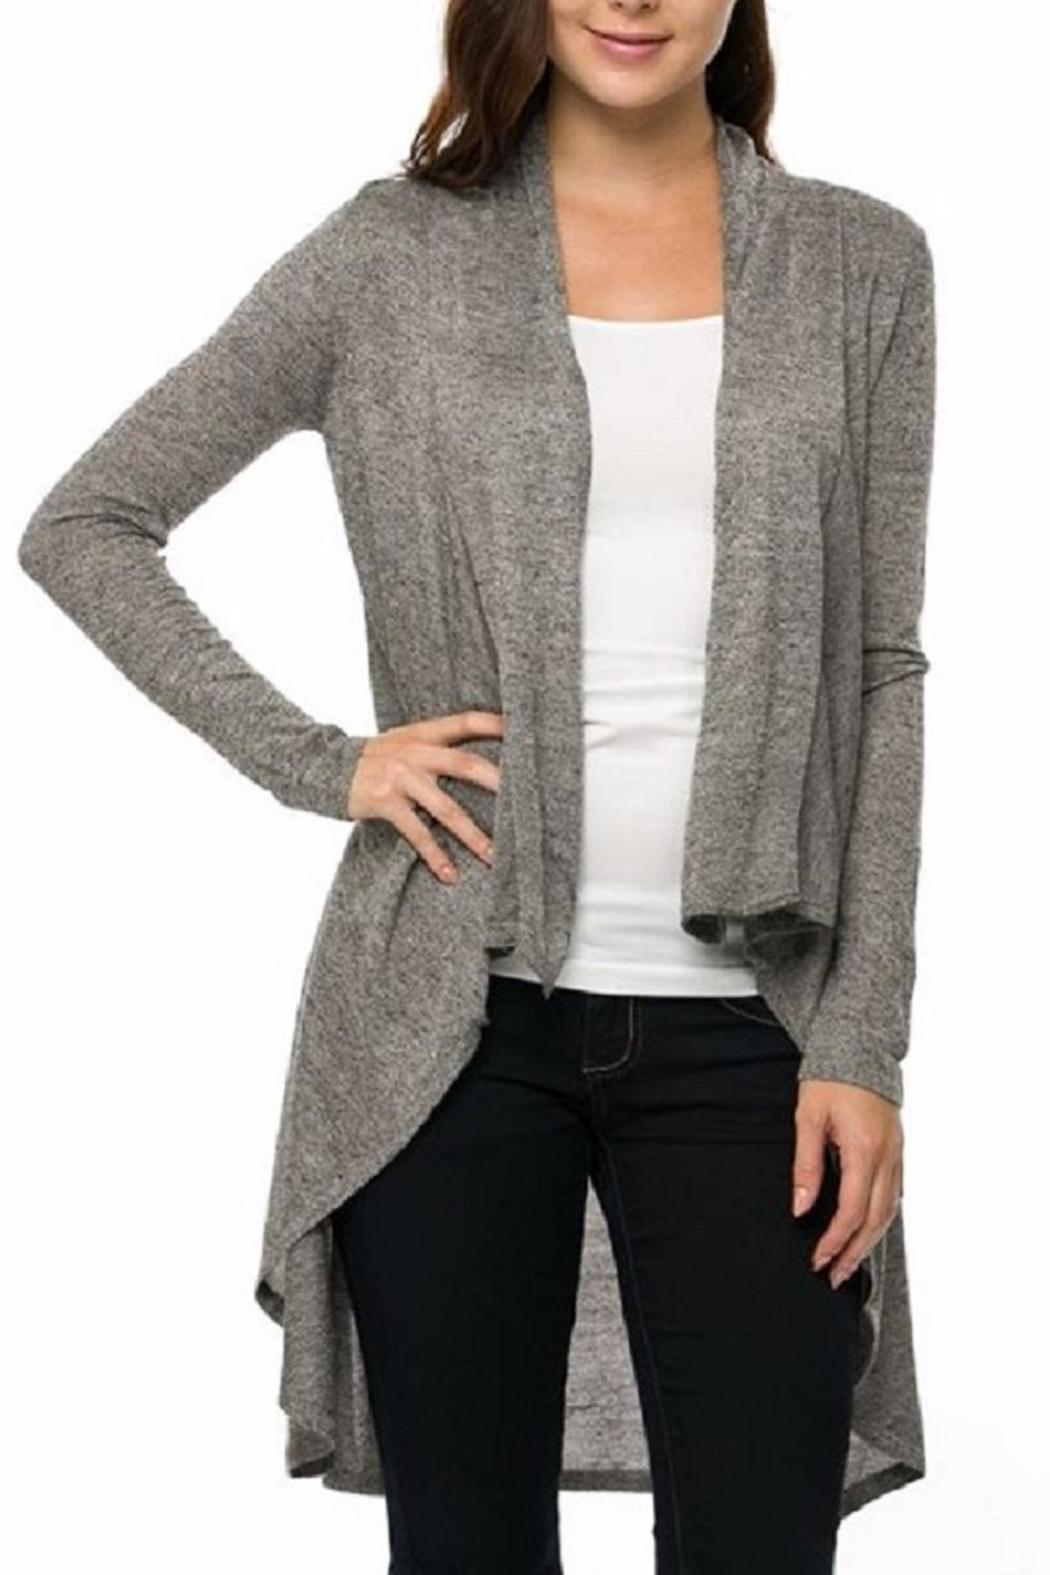 image nordstrom of rack front shop cardigan draped drapes product open chaser